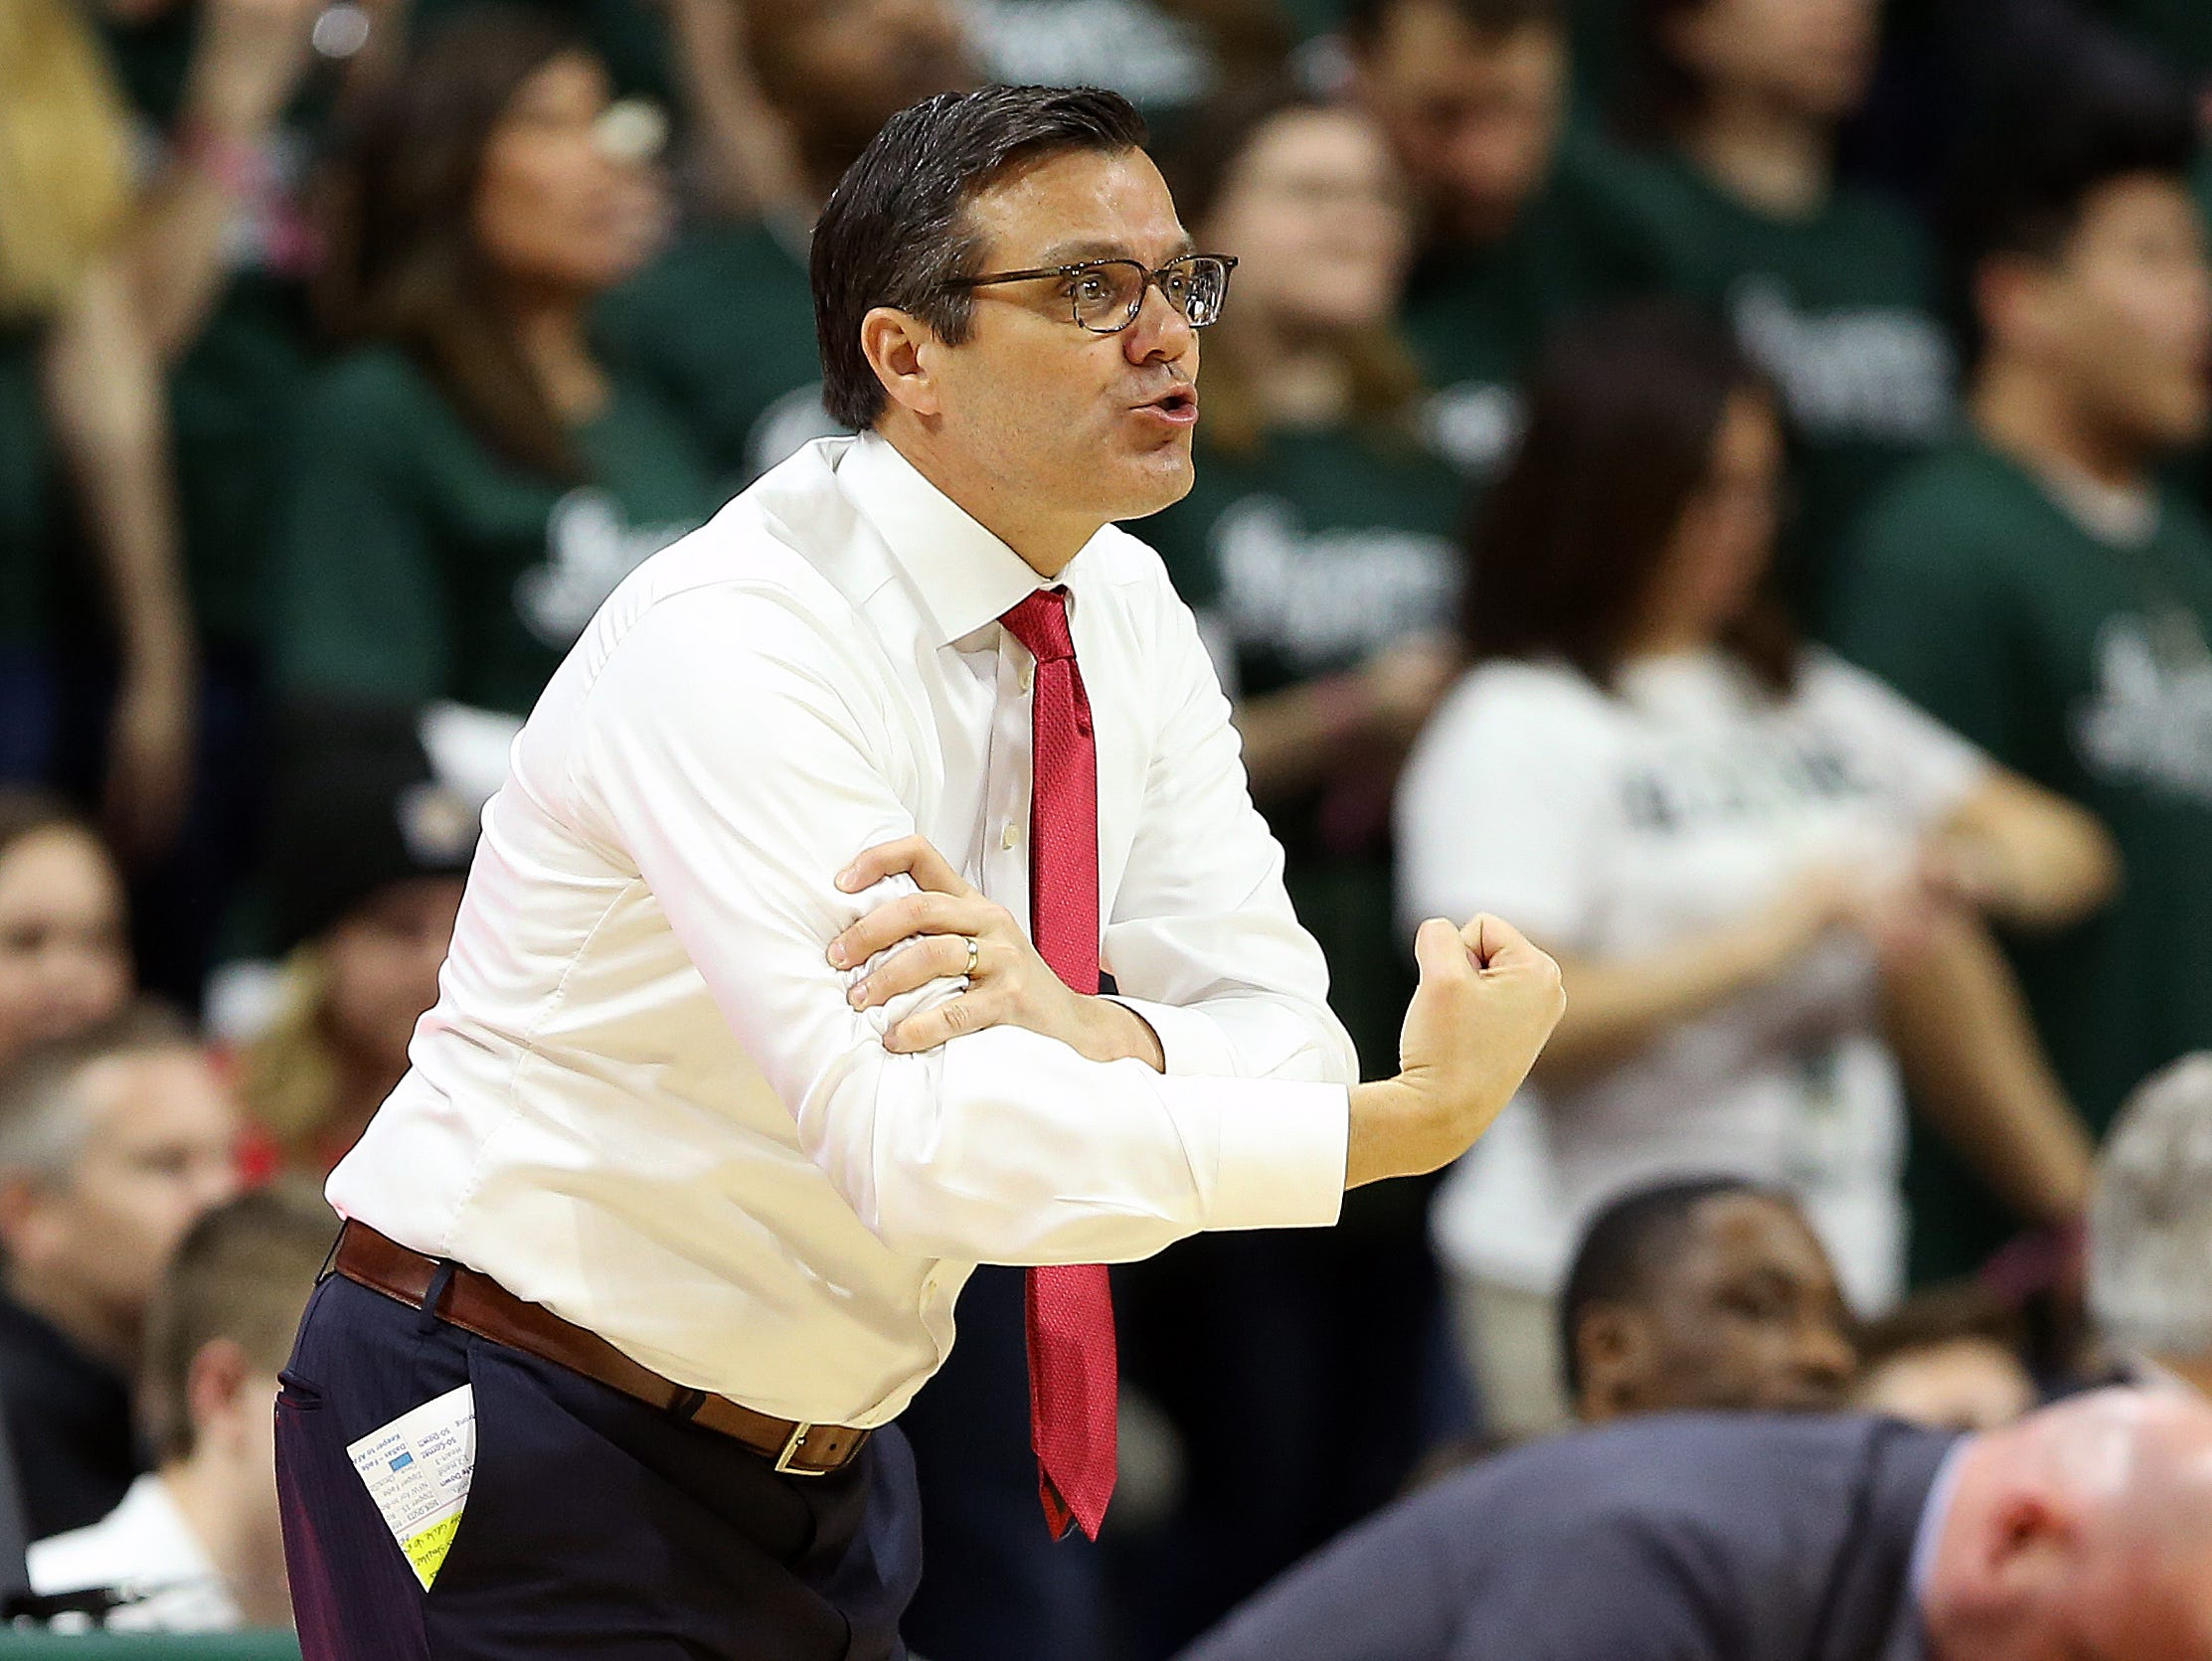 Mar 5, 2019; East Lansing, MI, USA; Nebraska Cornhuskers head coach Tim Miles gestures to his players during the second half against the Michigan State Spartans at the Breslin Center. Mandatory Credit: Mike Carter-USA TODAY Sports